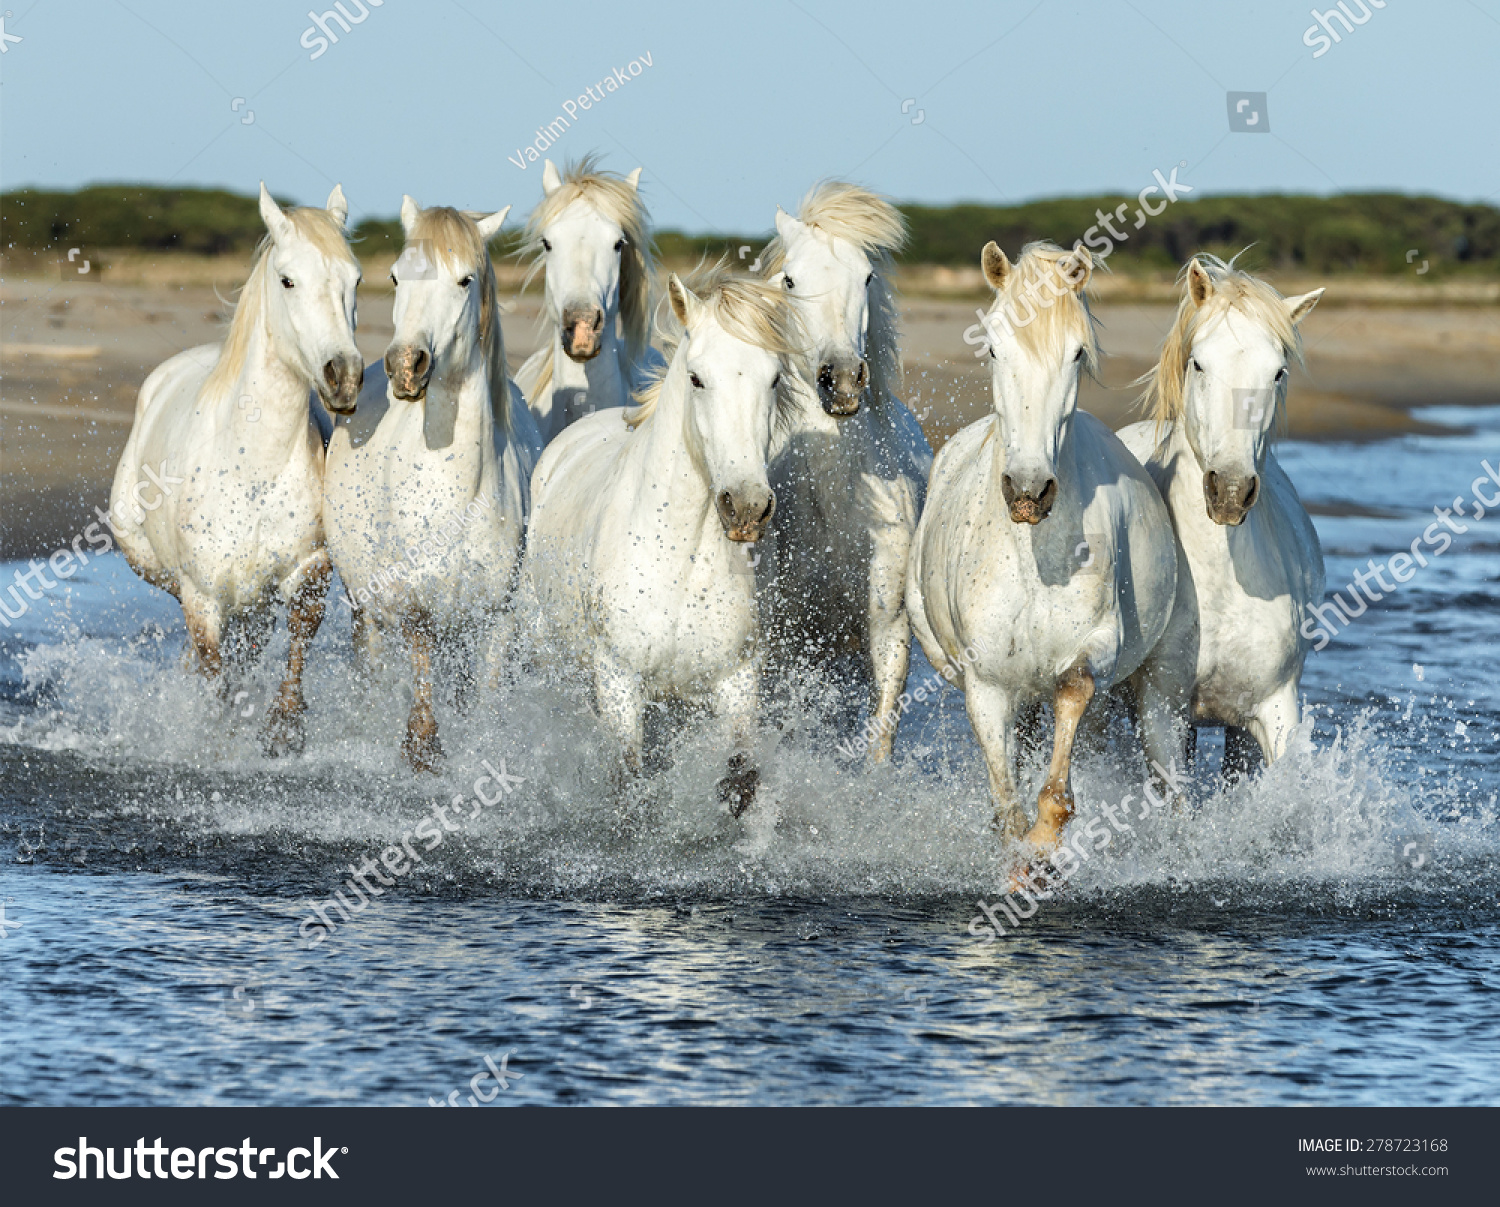 2019 year look- Horses White running on beach pictures